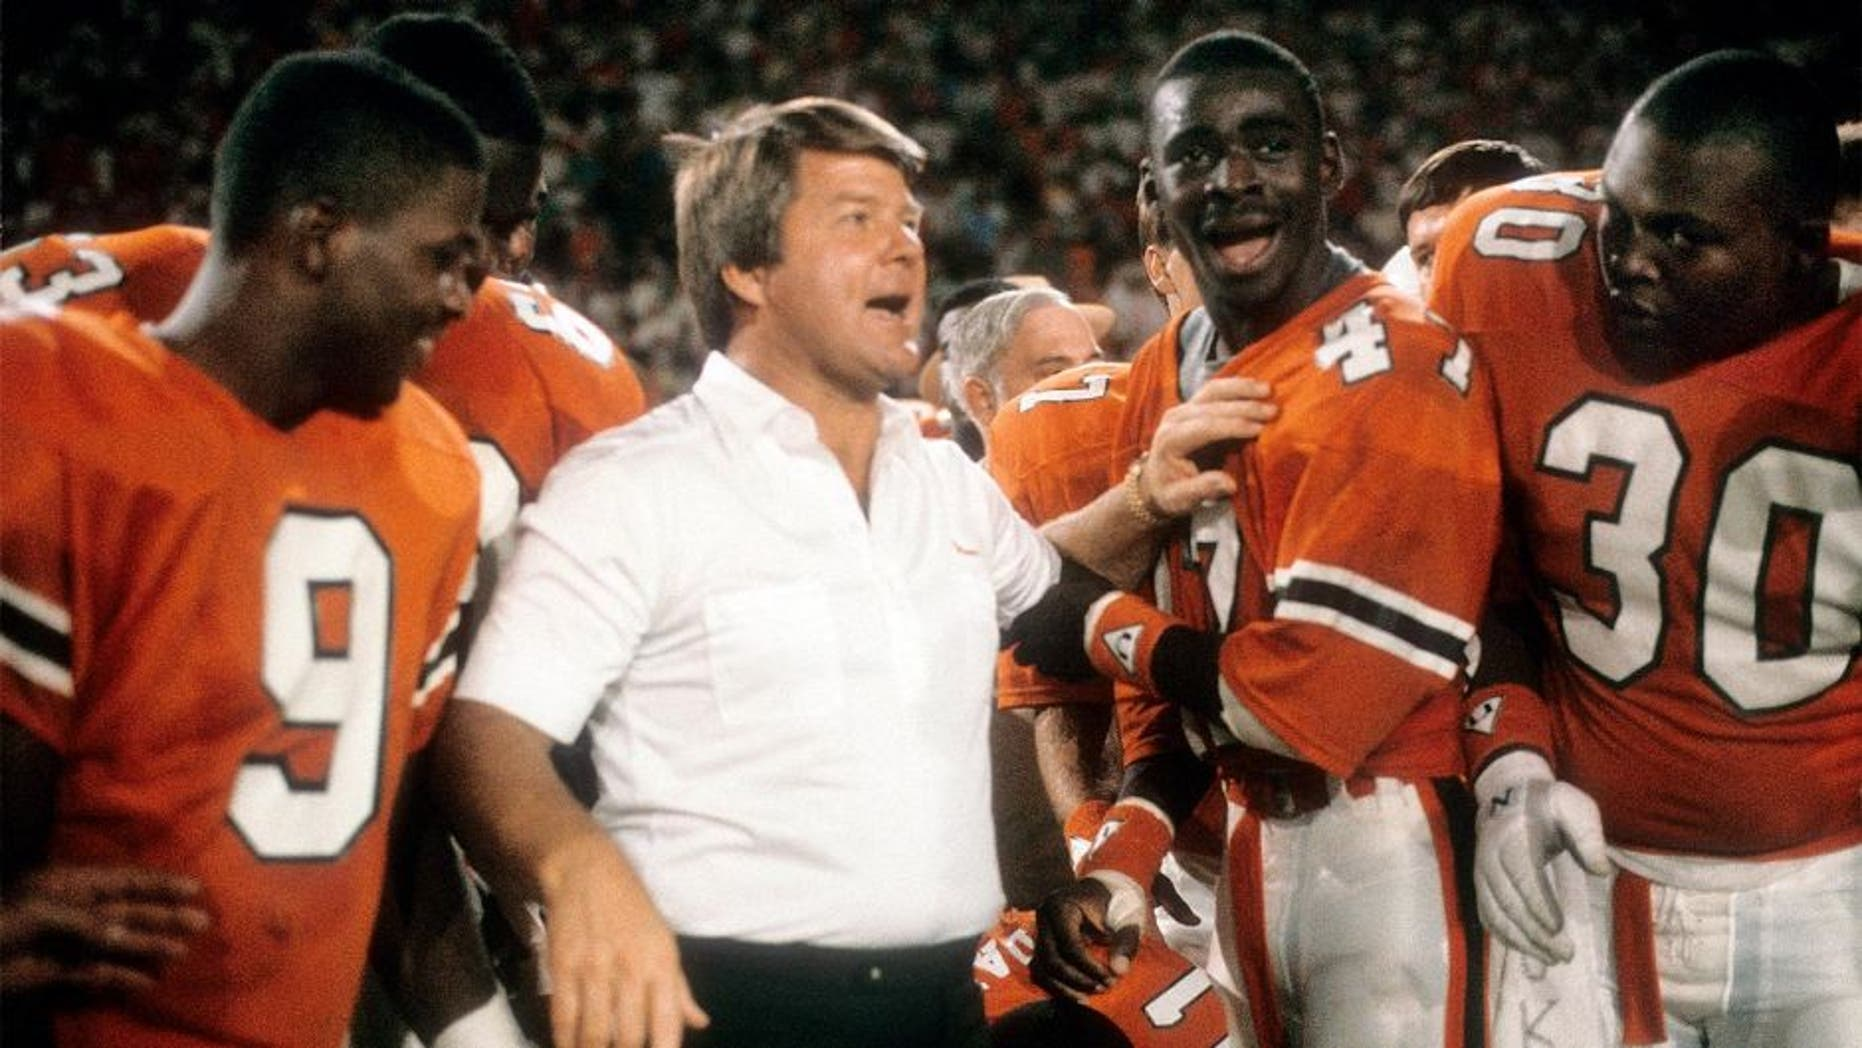 MIAMI, FL - JANUARY 1: Head coach Jimmy Johnson of the #2 rank University of Miami Hurricanes football team with his arm on wide receiver Michael Irvin #47 January 1, 1988 after the NCAA Orange Bowl football Game against the #1 rank Oklahoma University Sooner at the Orange Bowl in Miami, Florida. The Hurricanes won the game 20-14 and became the National Champions. Johnson was the head coach of the Miami Hurricanes from 1984-88. (Photo by Focus on Sport/Getty Images)